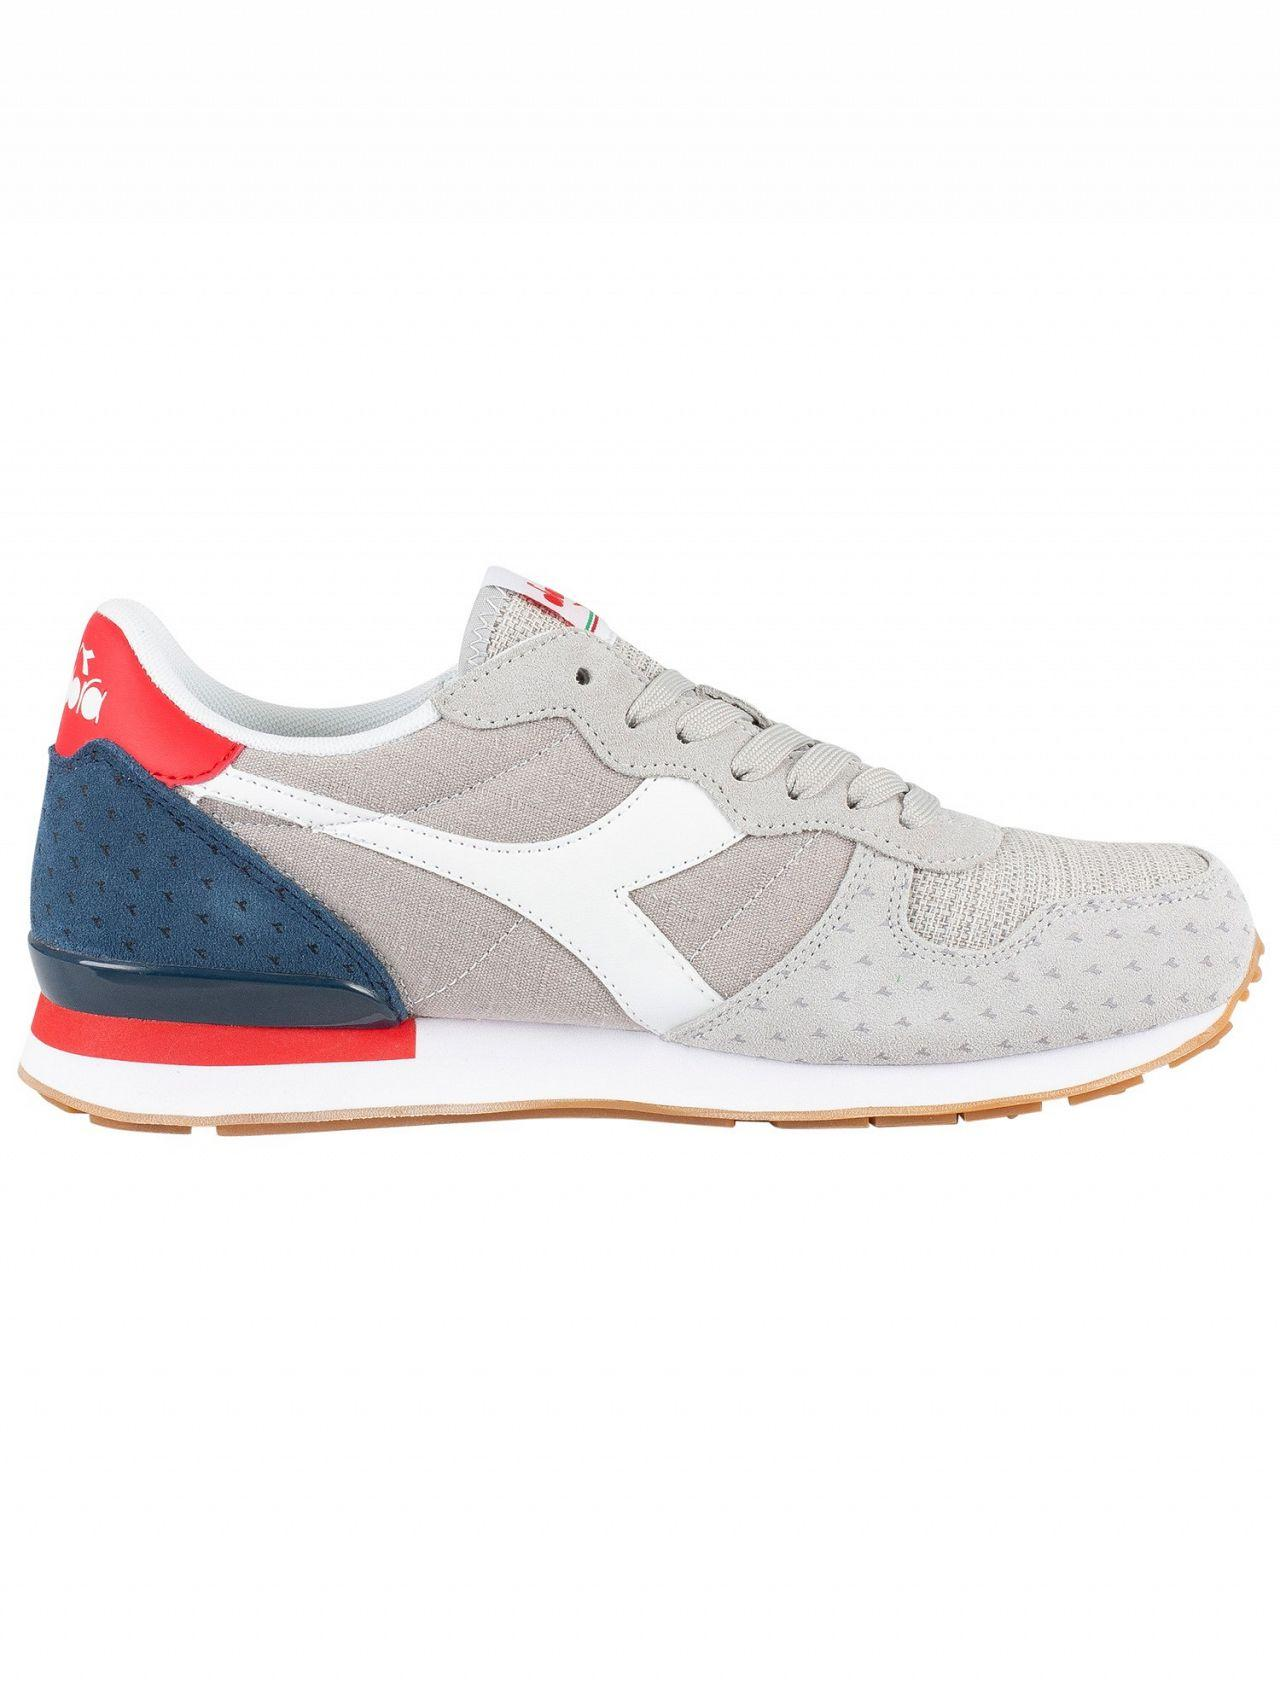 b14bd9c2 Lyst - Diadora White/blue Denim Camaro Summer Trainers in White for Men